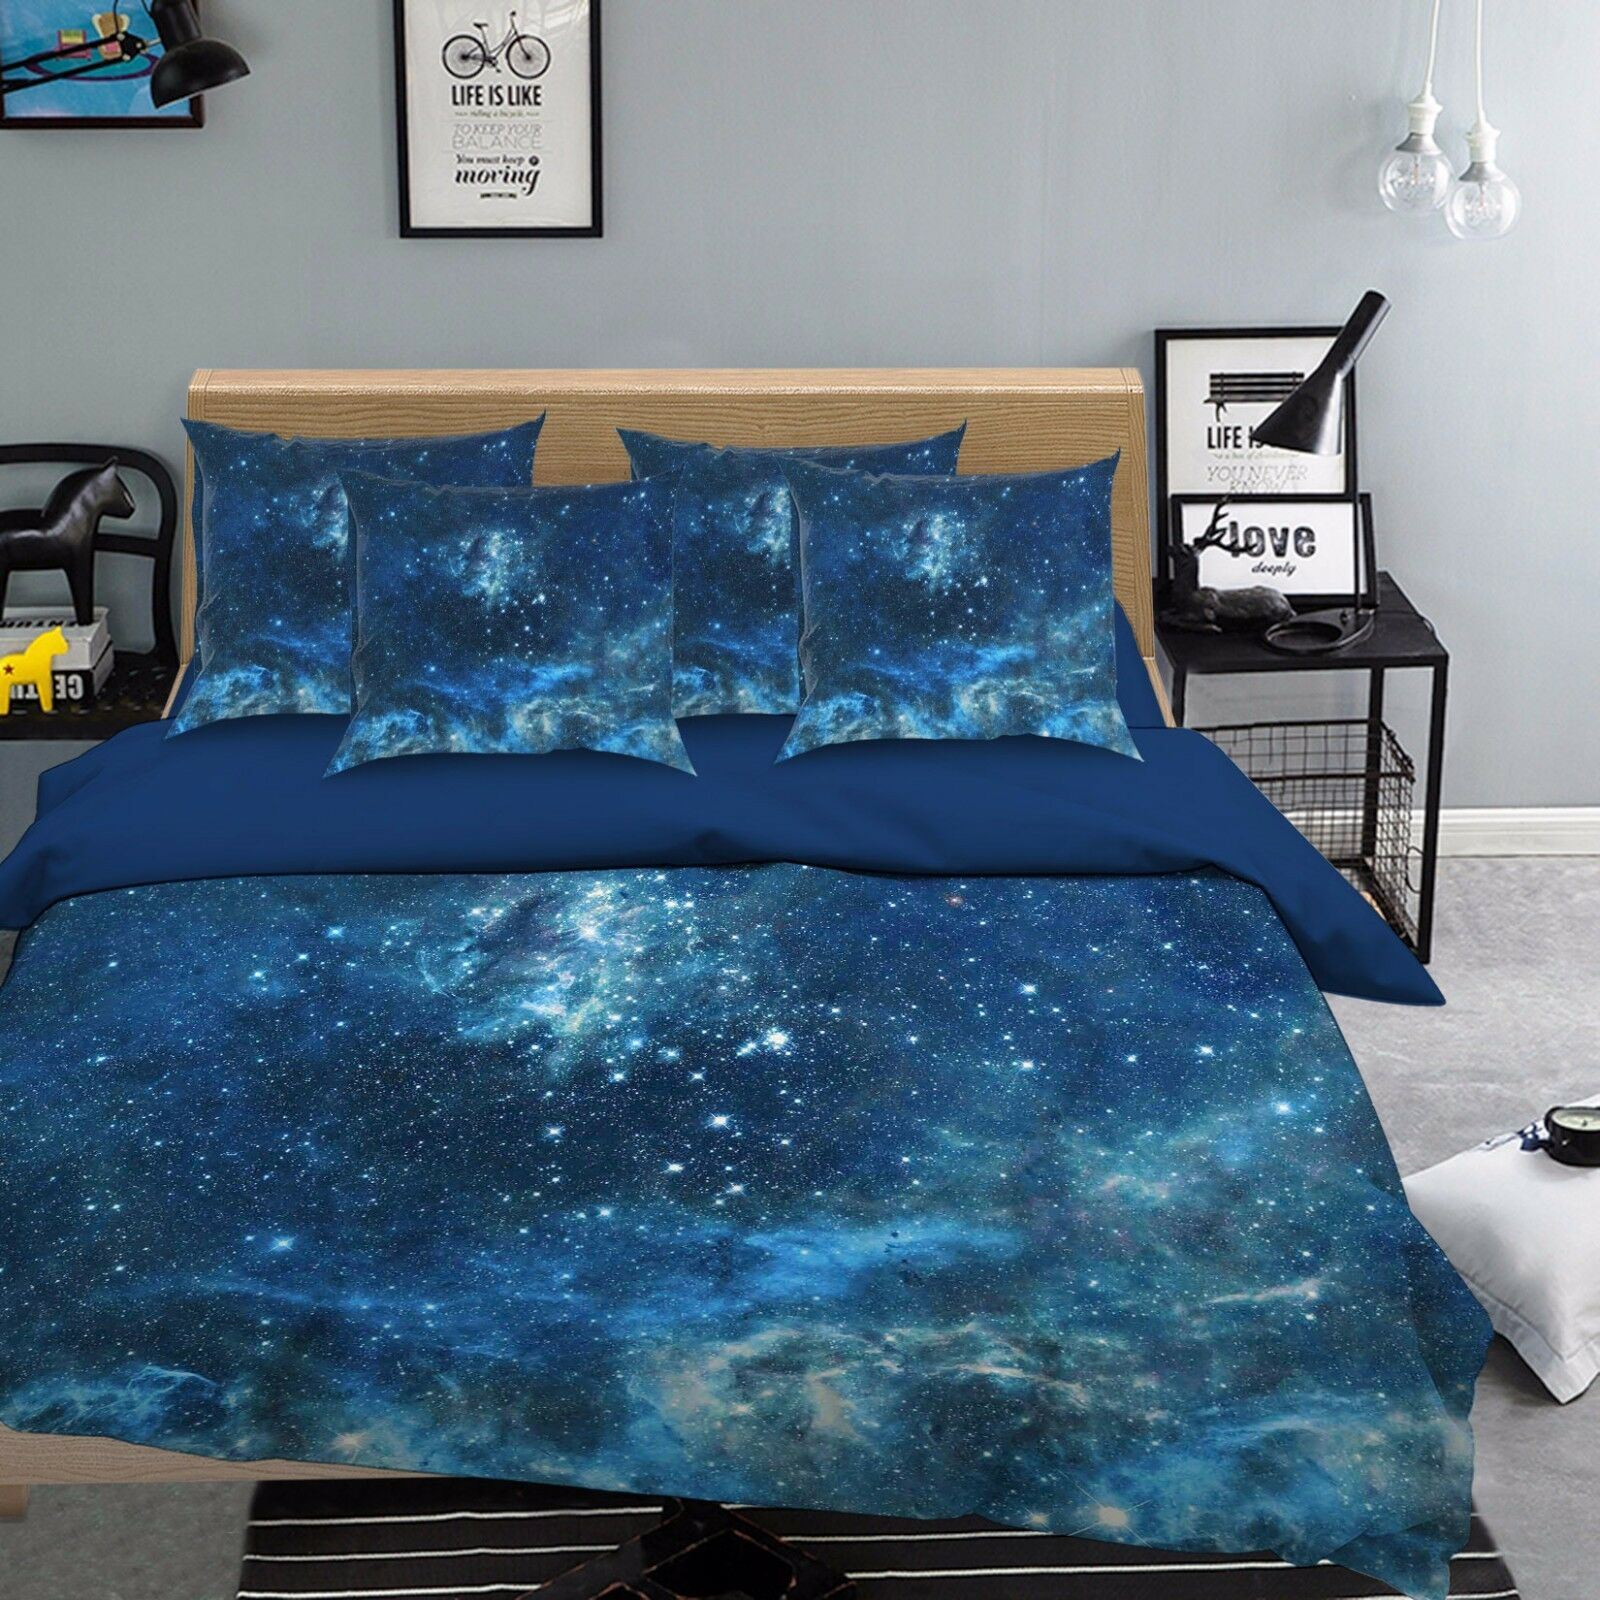 3D Sky Stars 768 Bed Pillowcases Quilt Duvet Cover Set Single Queen UK Carly